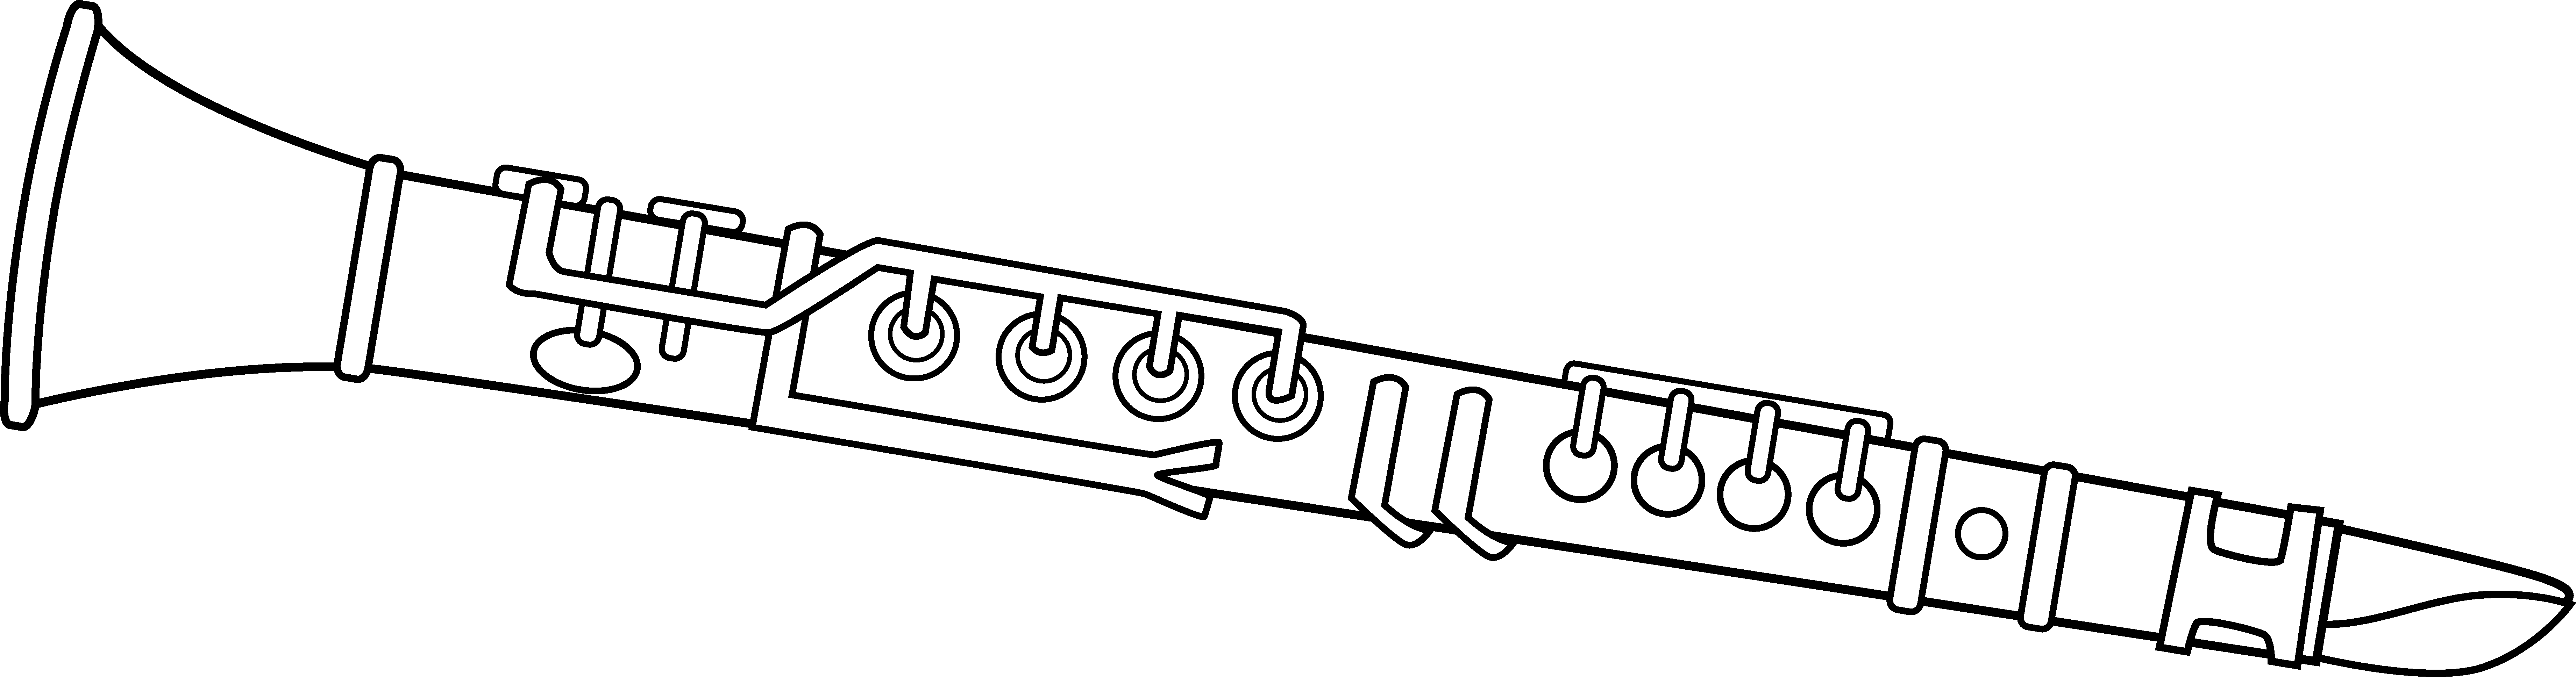 Black and White Clarinet Design.